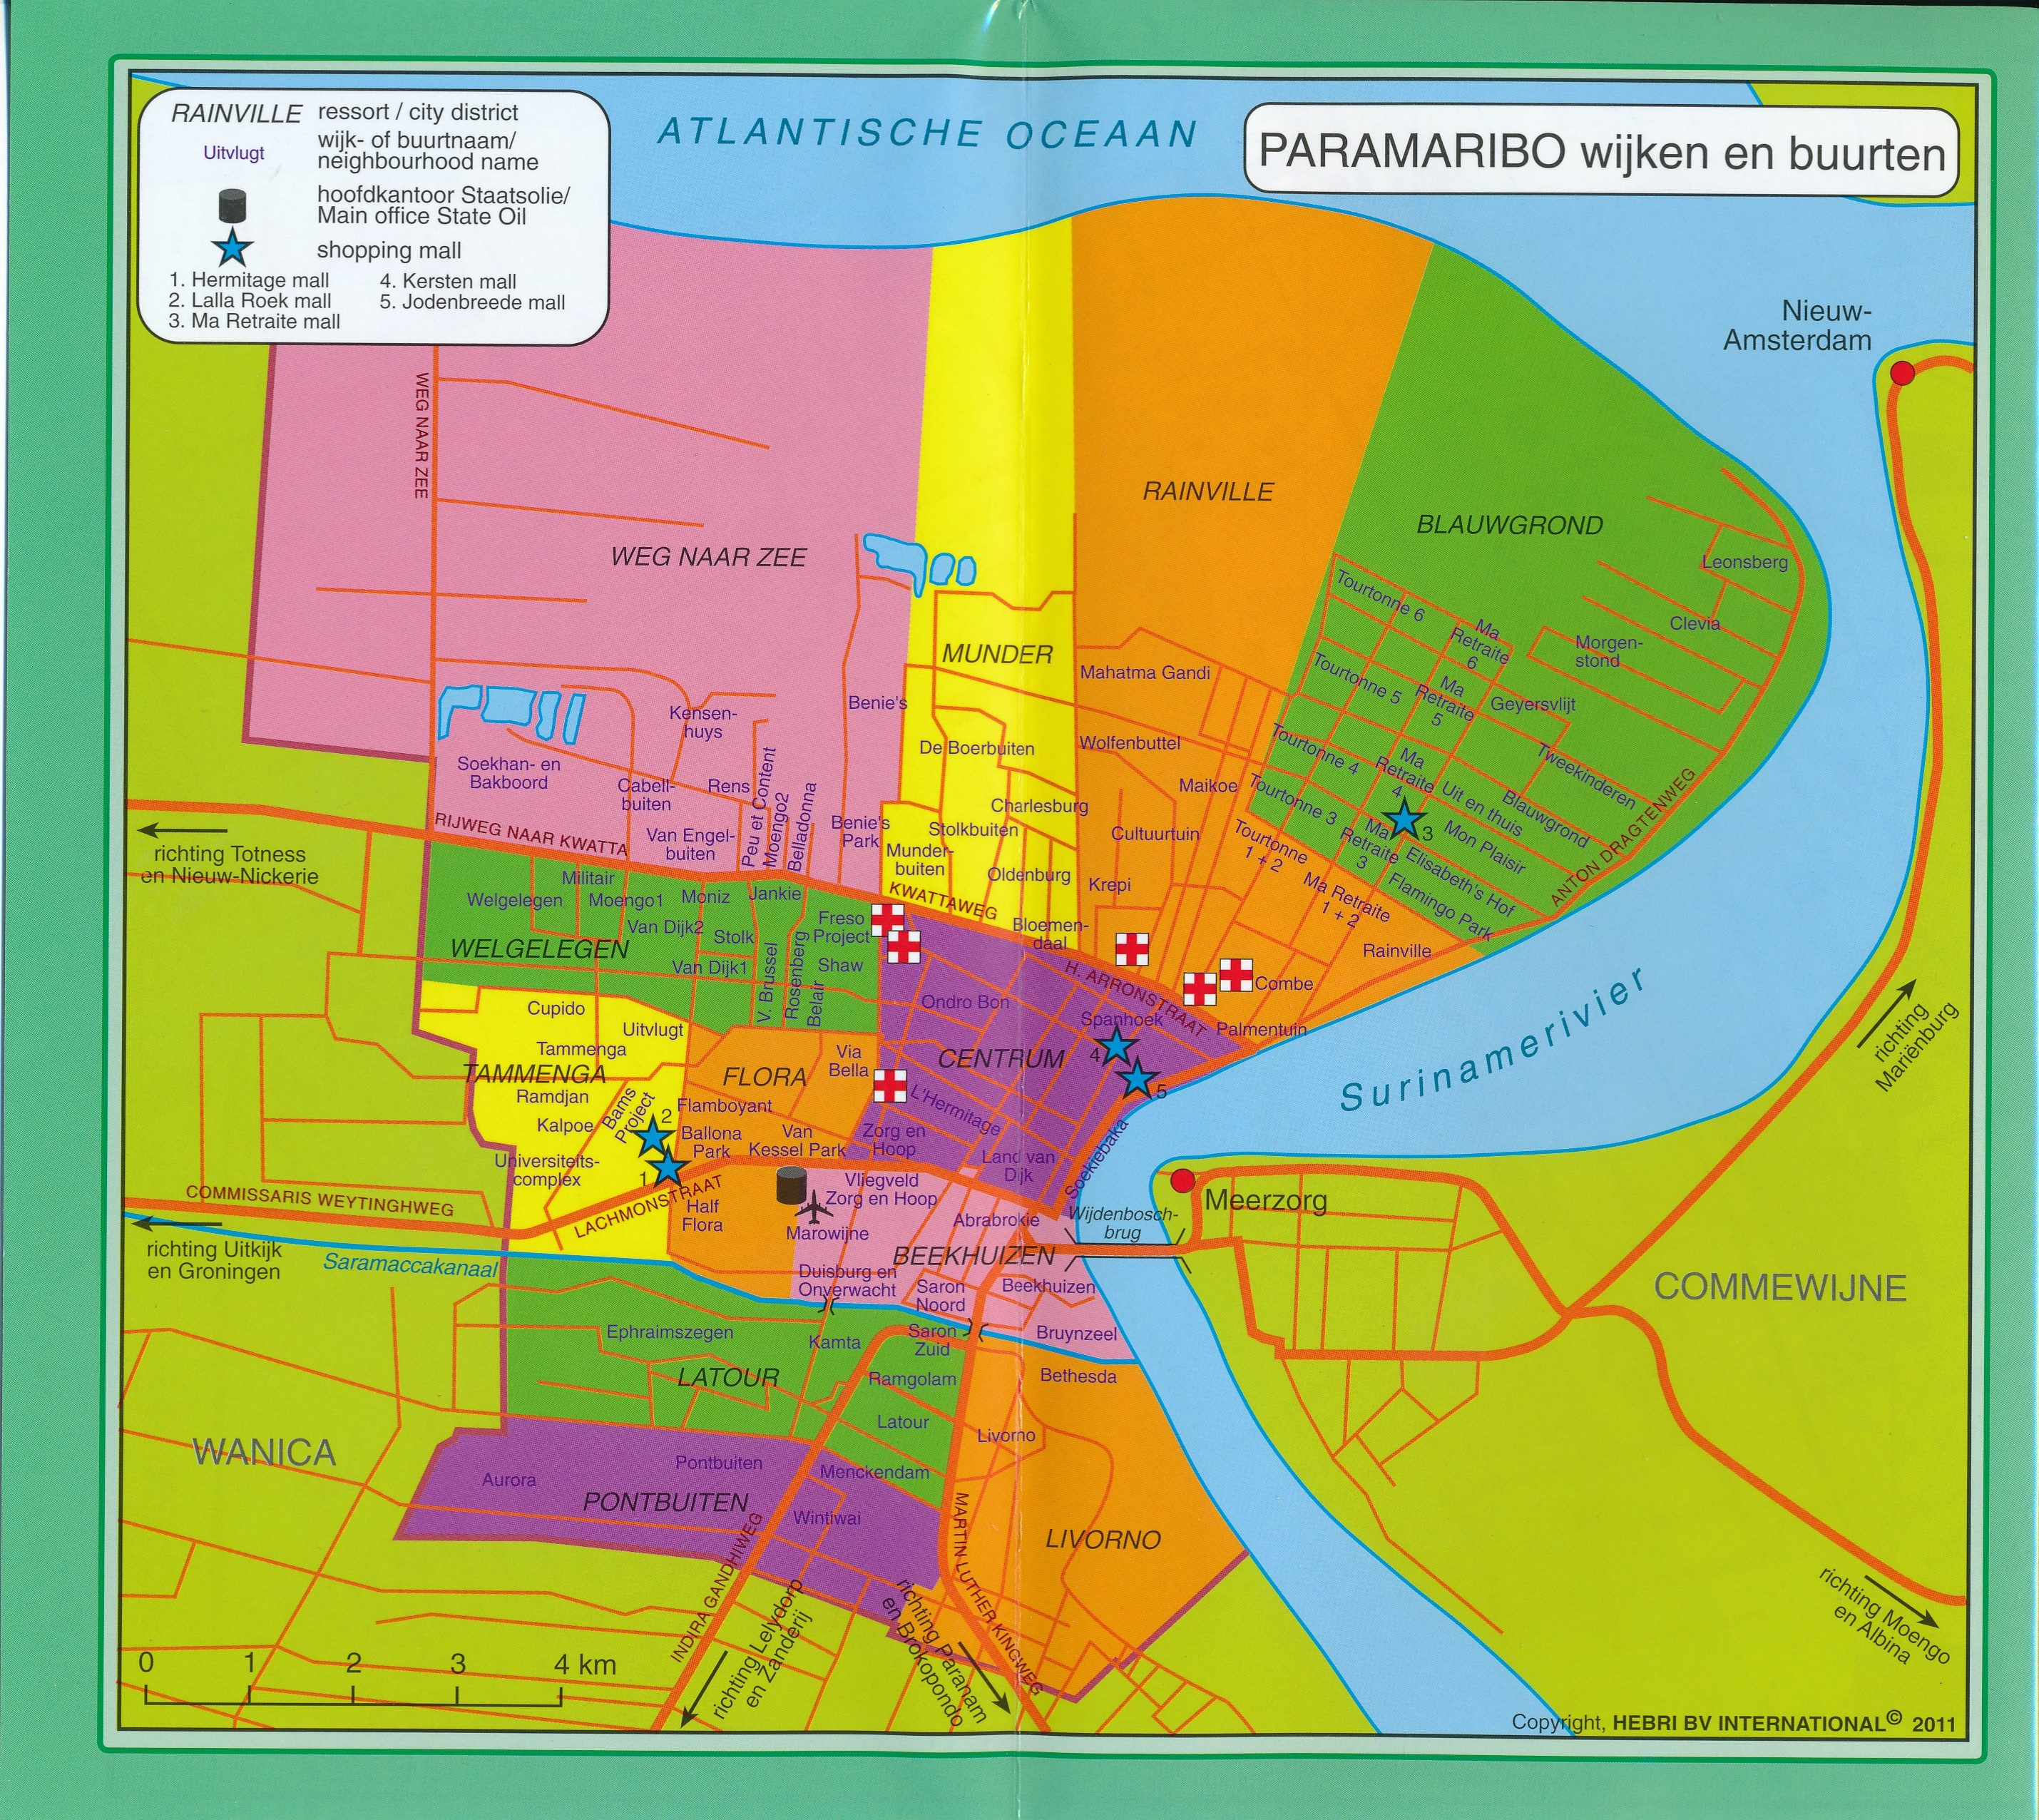 uruguay map with Wegenkaart Landkaart Suriname Paramaribo Hebri on Bahias De Huatulco 8 together with 3guianas Political Map likewise Montenegro Automotive Industry additionally 3442105 also Europe Location Map.